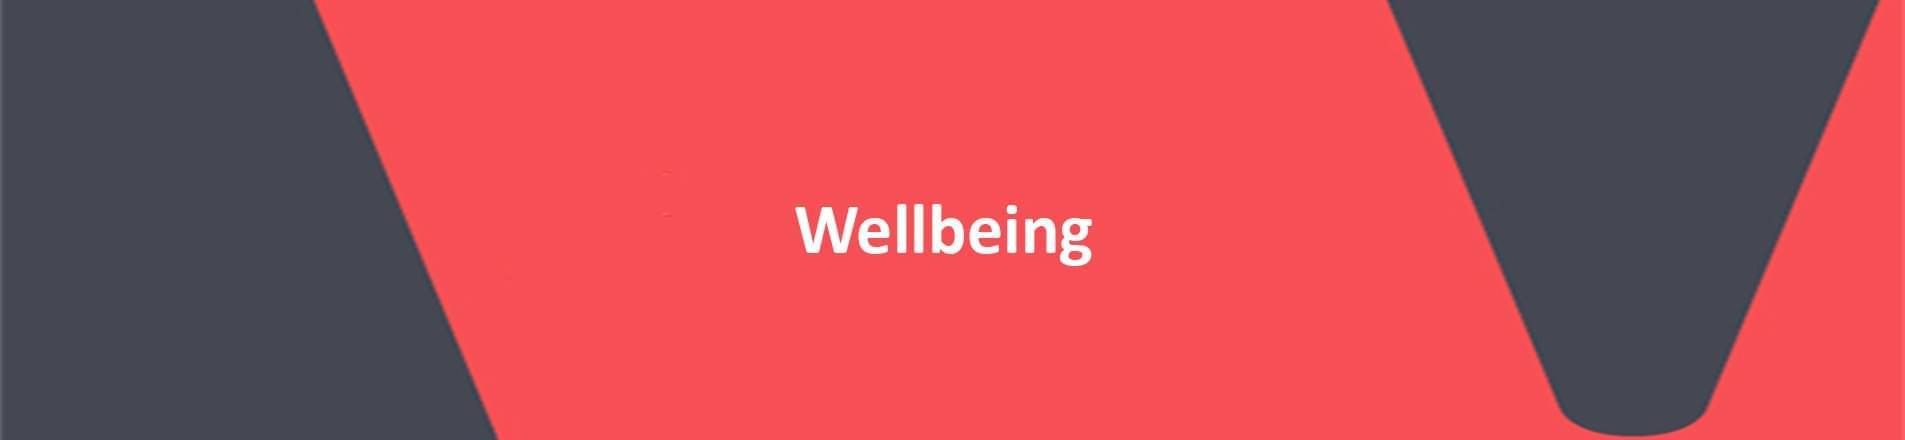 Image of the word wellbeing